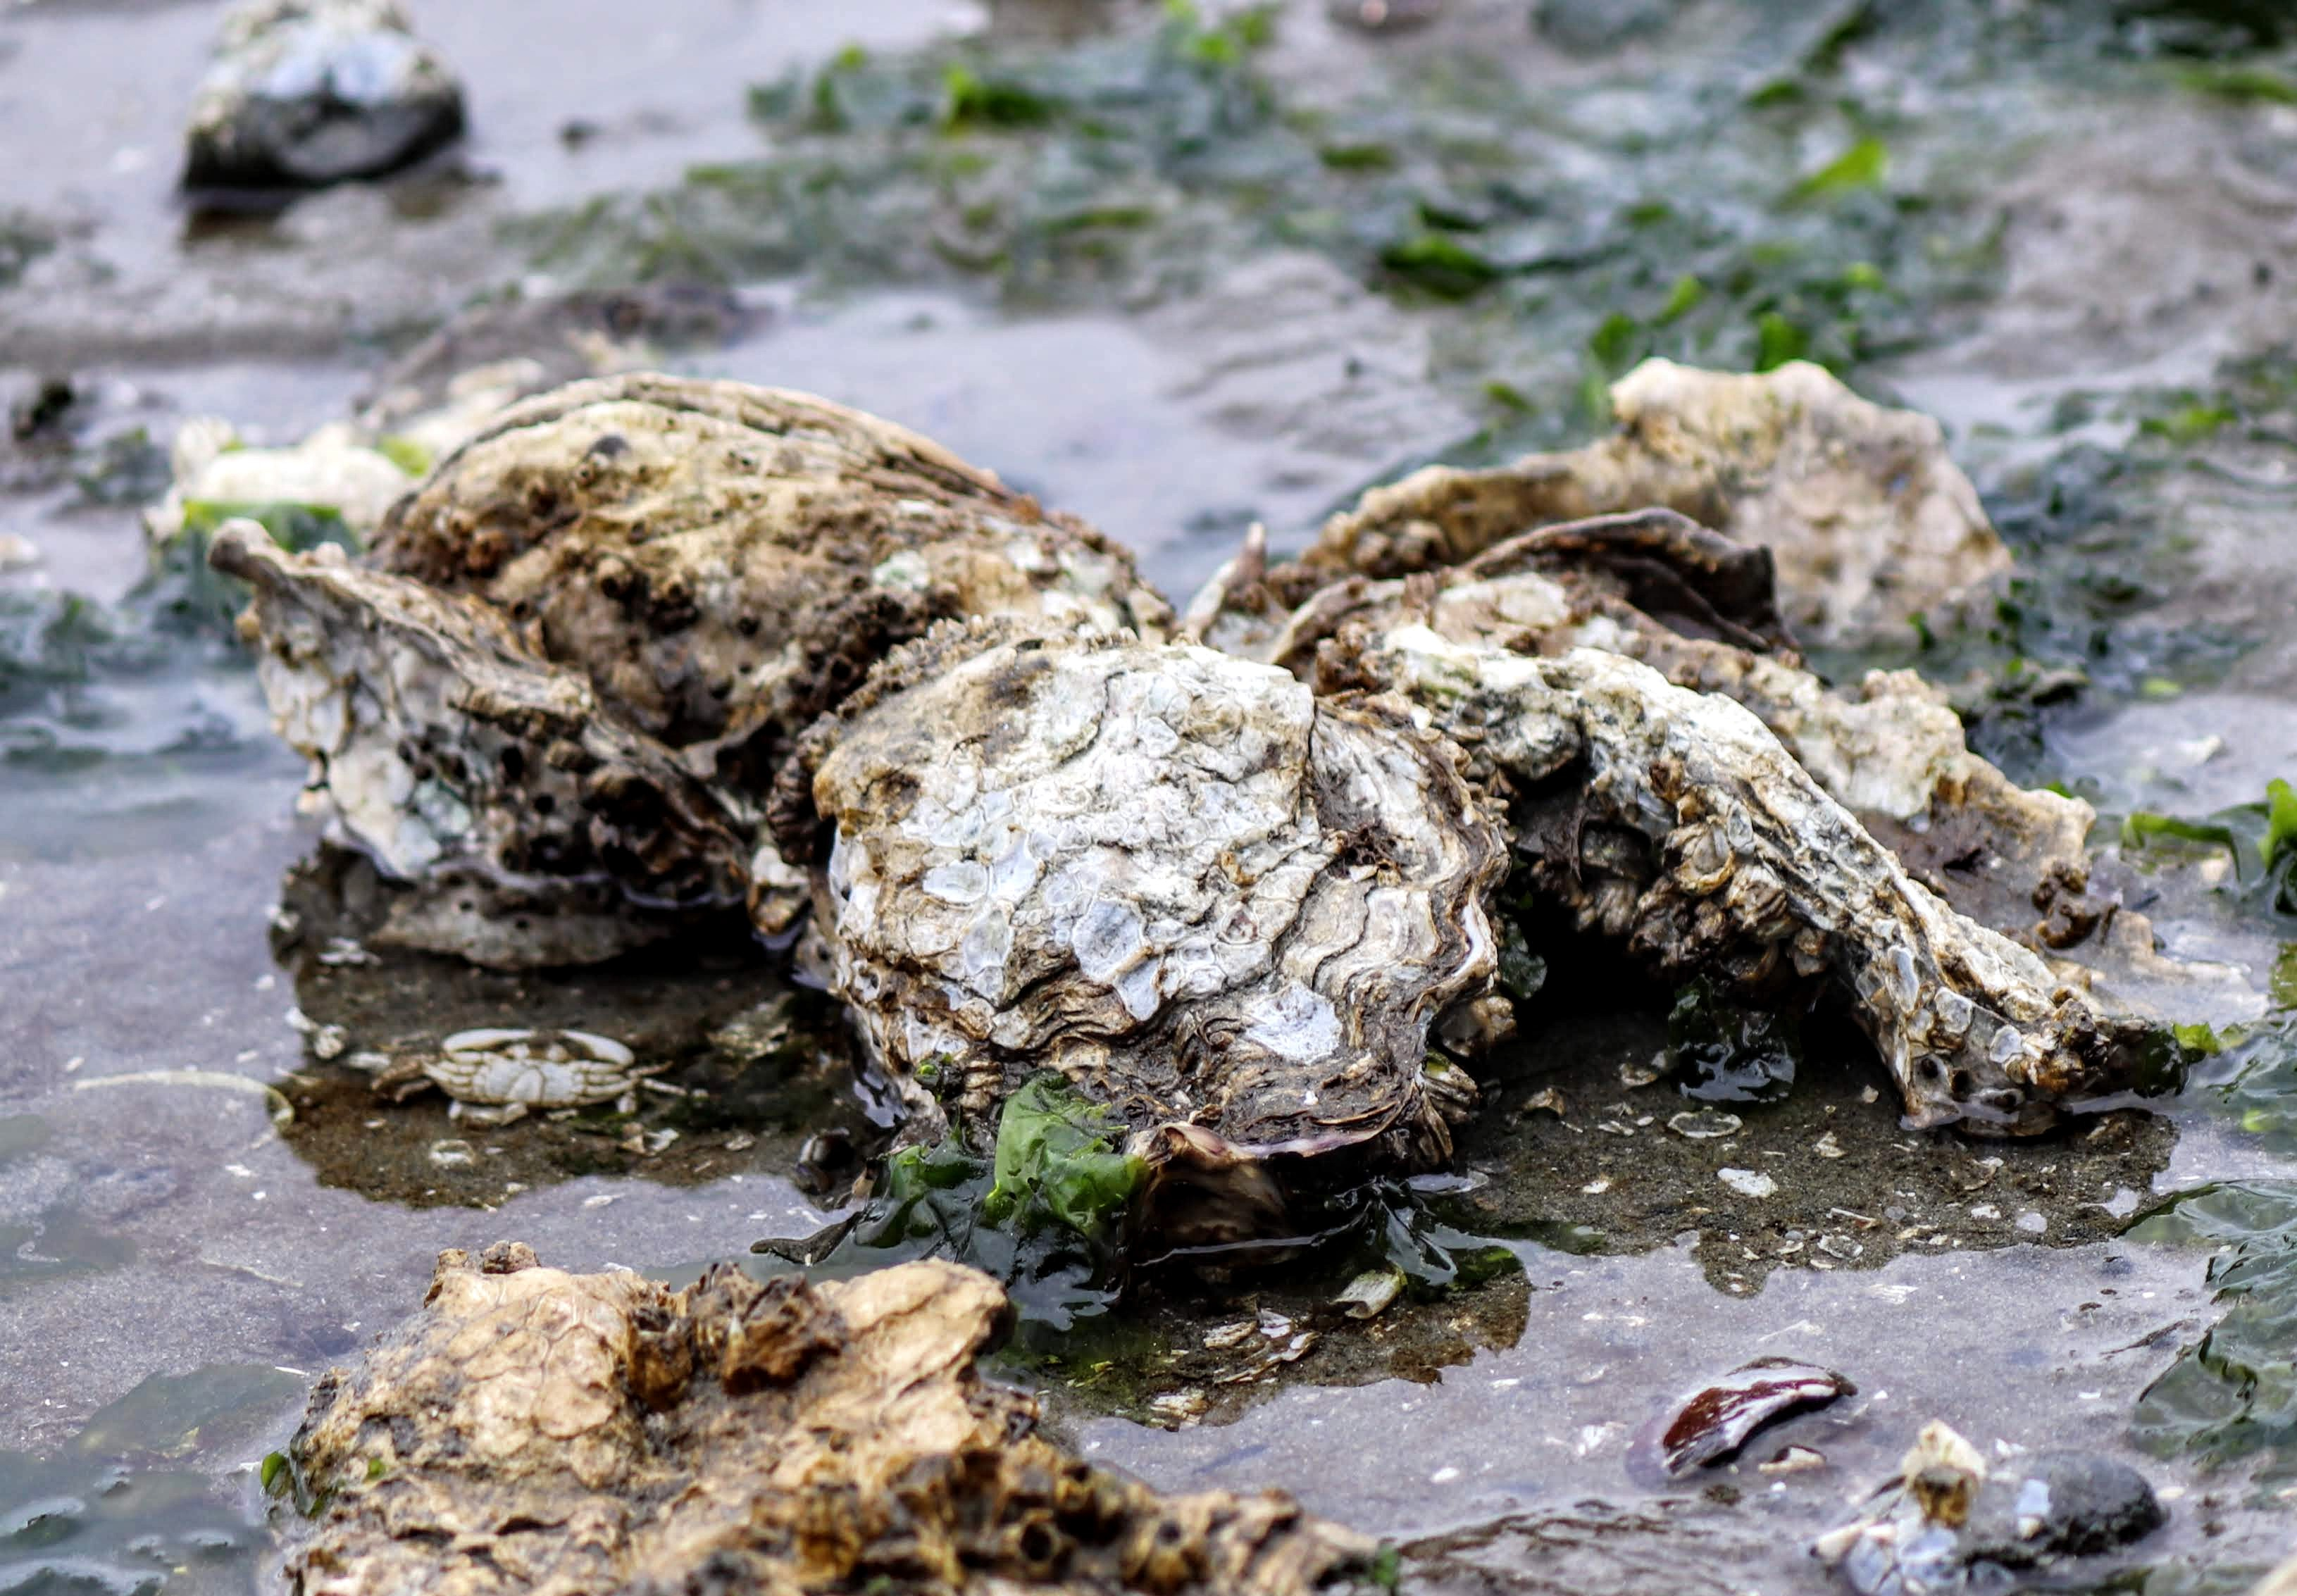 Oysters exposed at low tide in a muddy oyster bed.